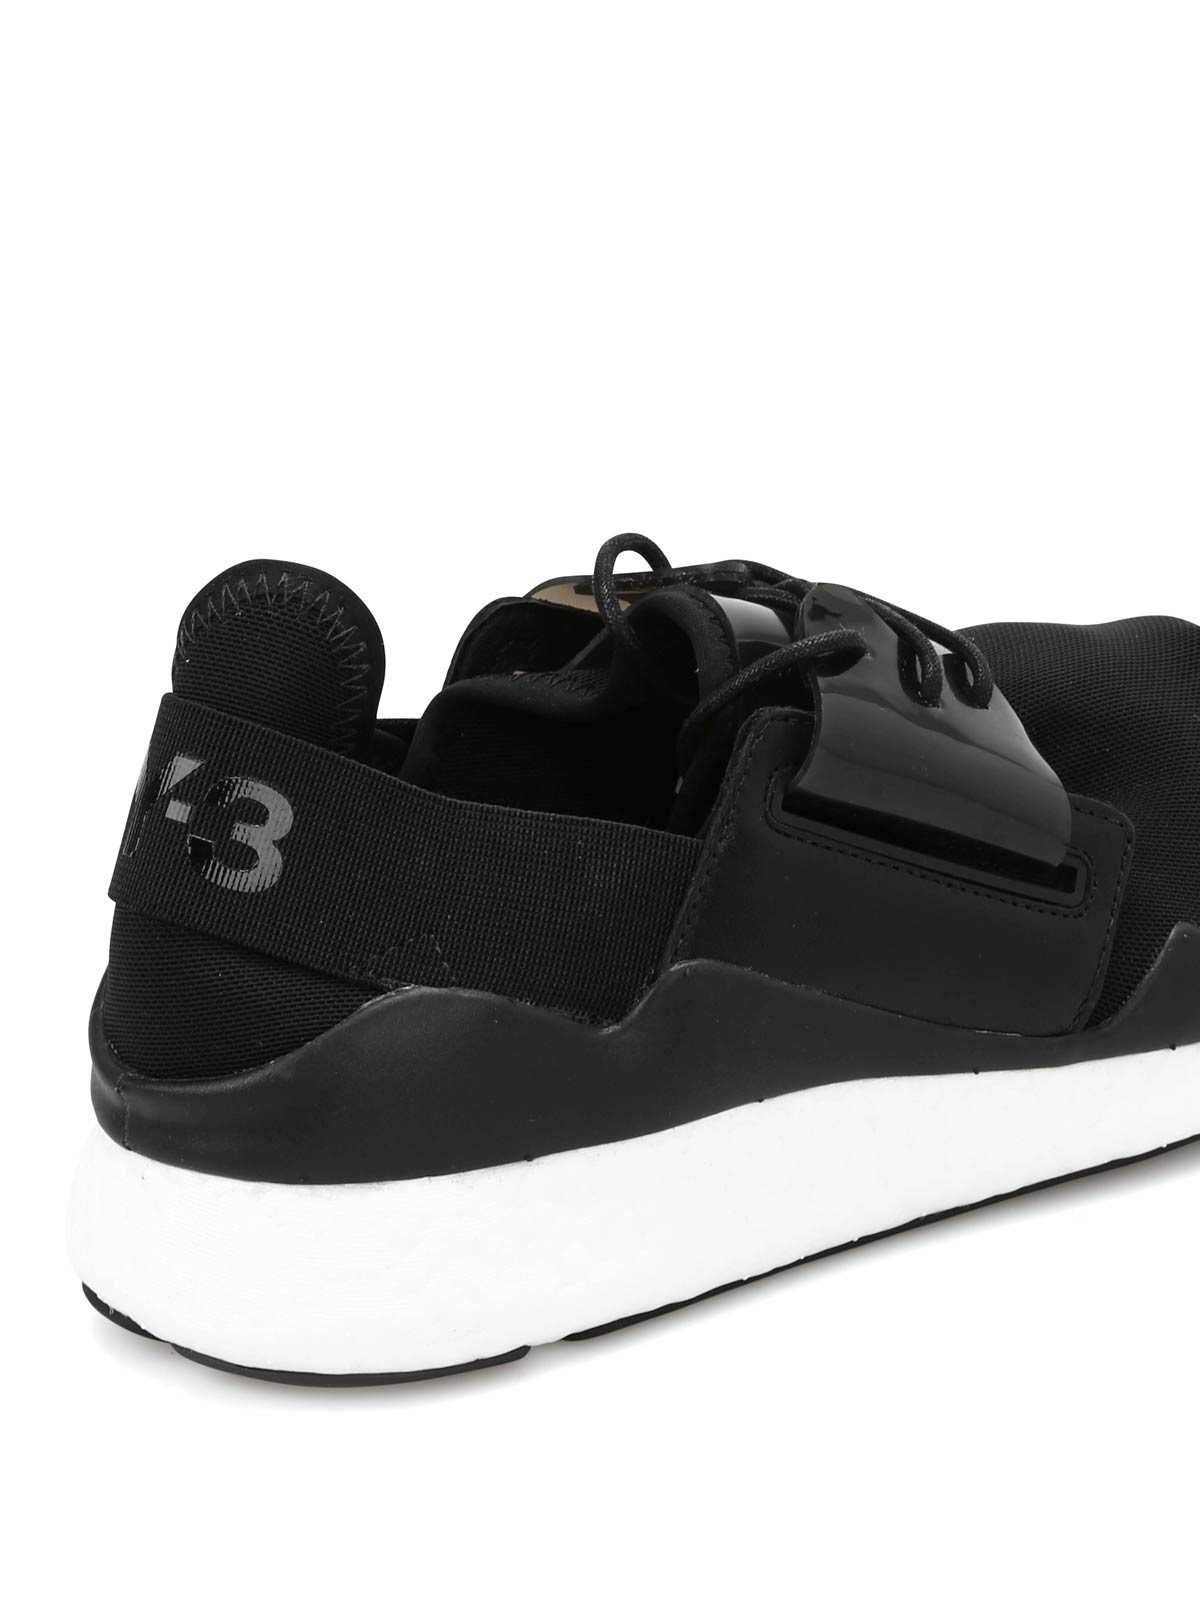 541a2d3d08434 Adidas Y-3 - Y-3 Chimu Boost sneakers - trainers ...